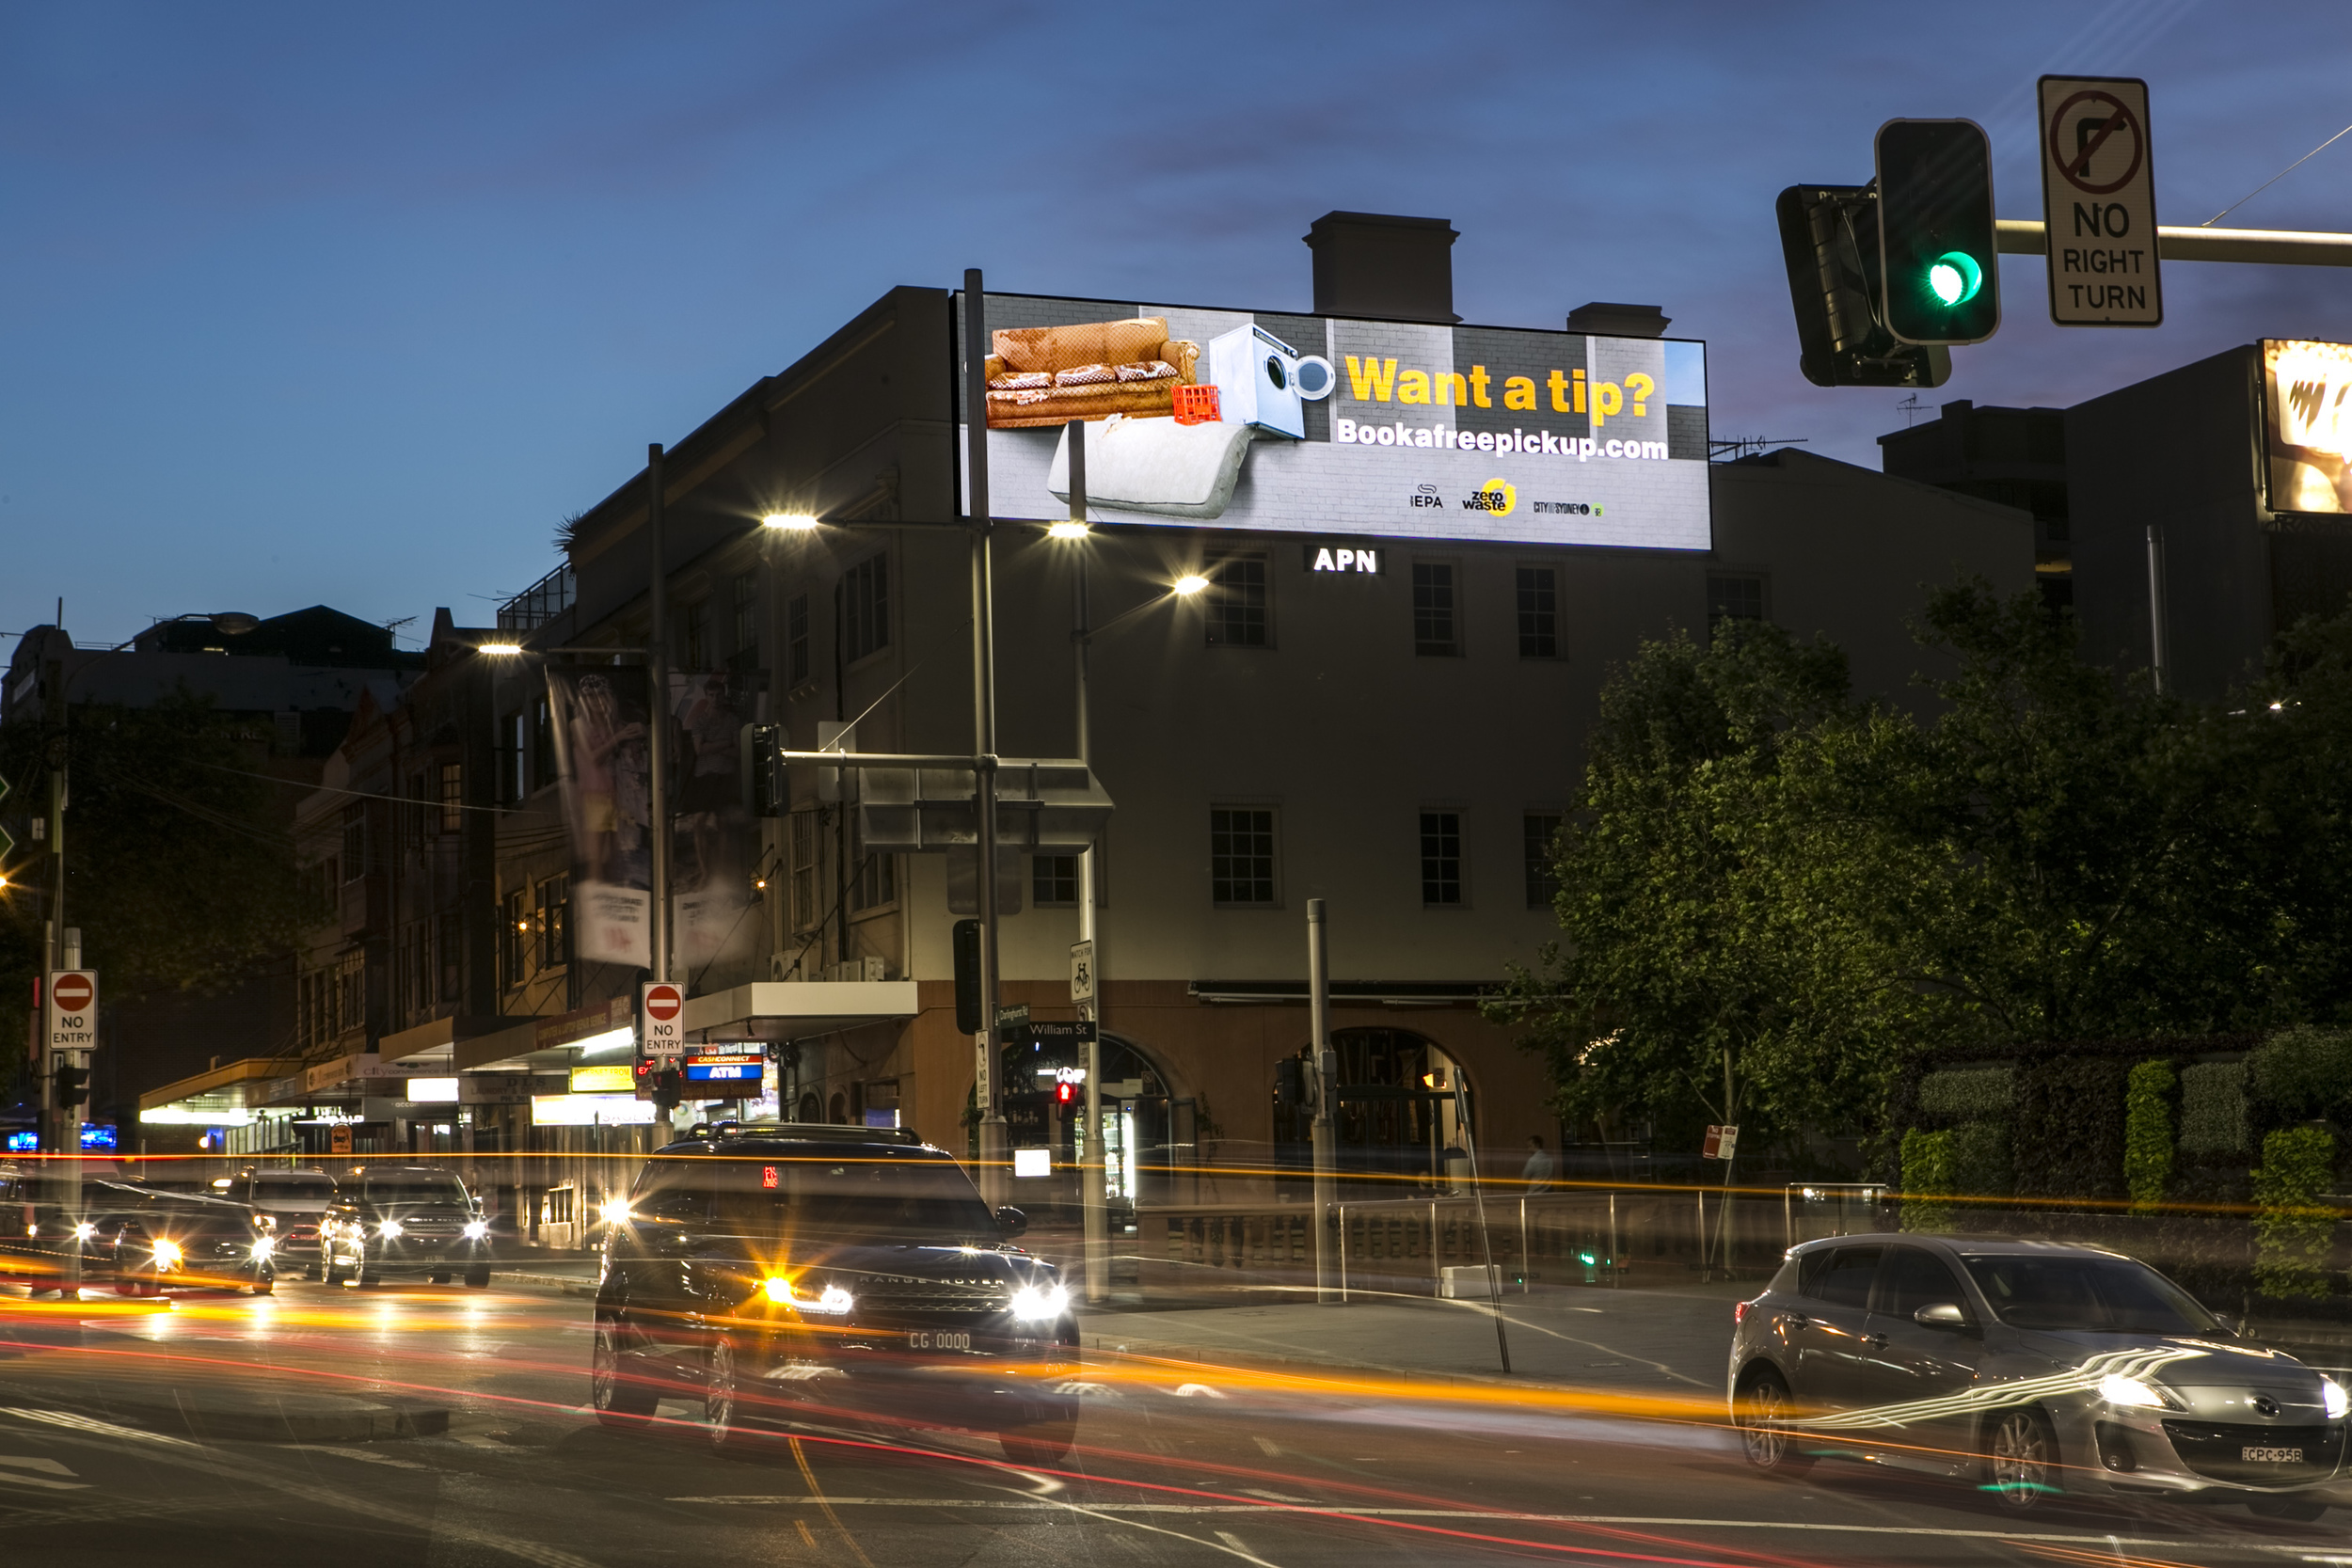 We designed this billboard to appear as if it was an extension of the building